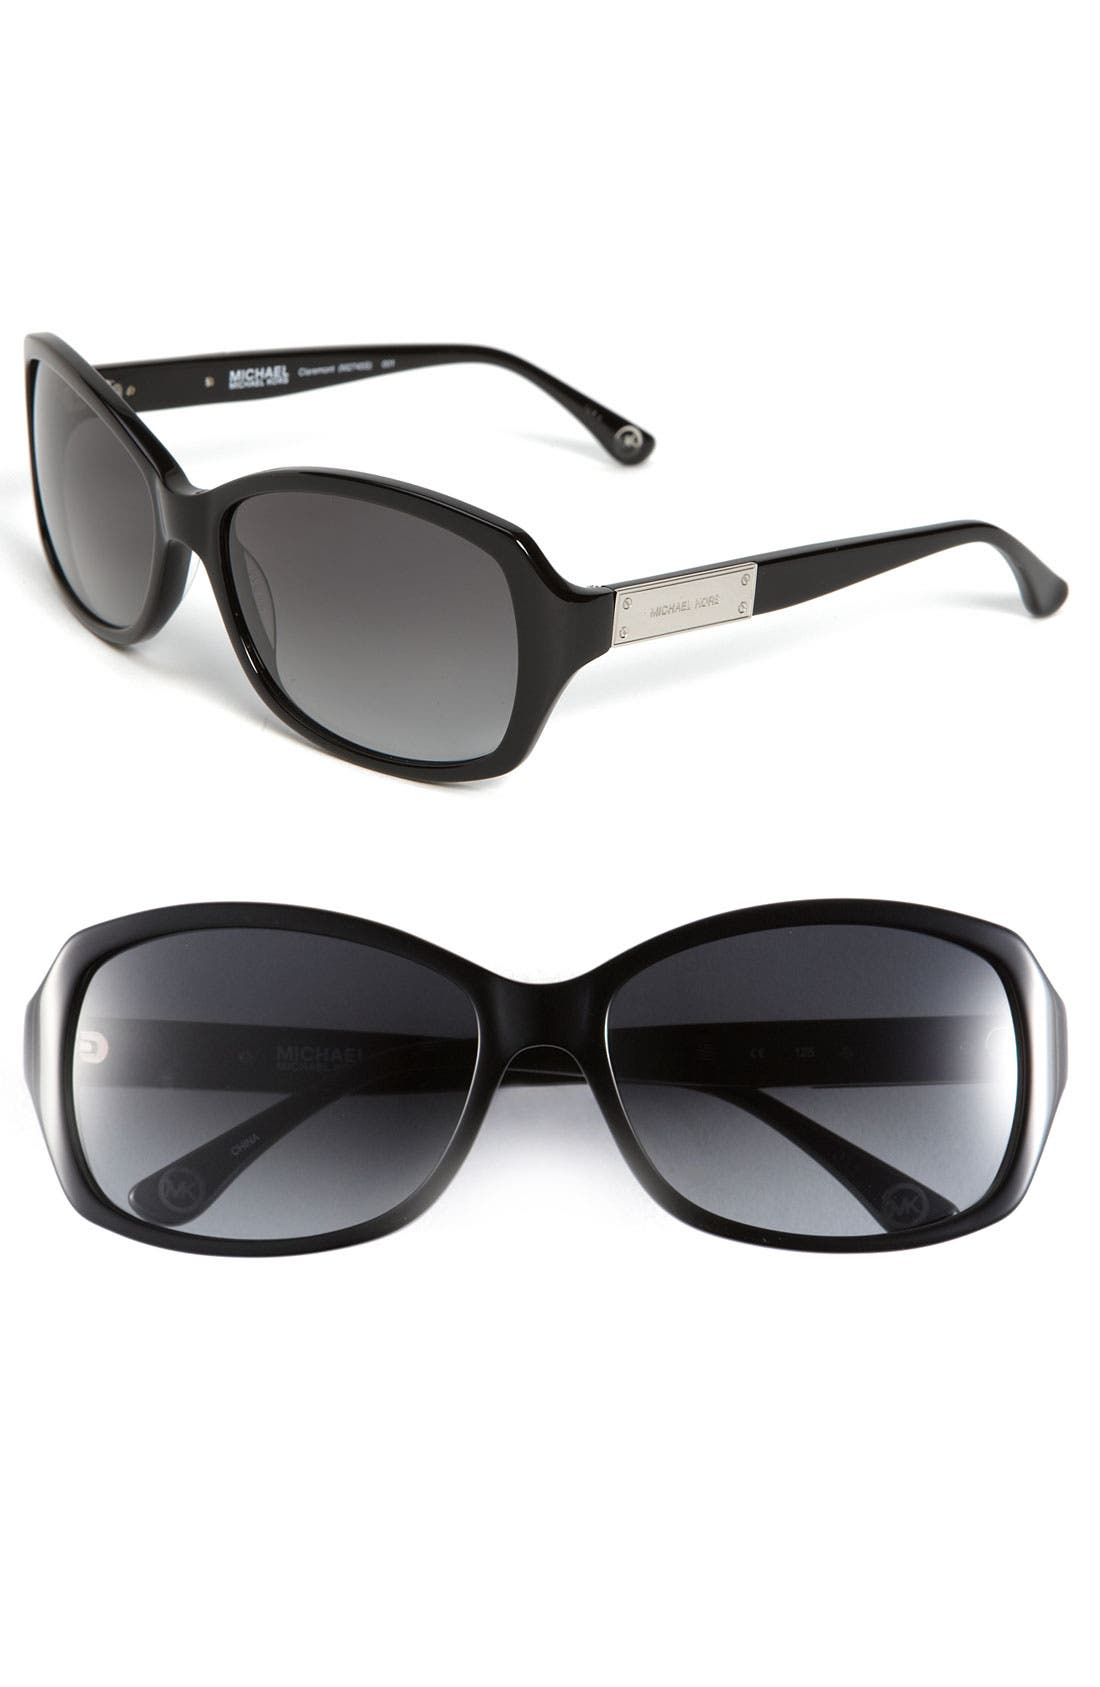 Alternate Image 1 Selected - MICHAEL Michael Kors 'Claremont' 57mm Plaque Logo Sunglasses